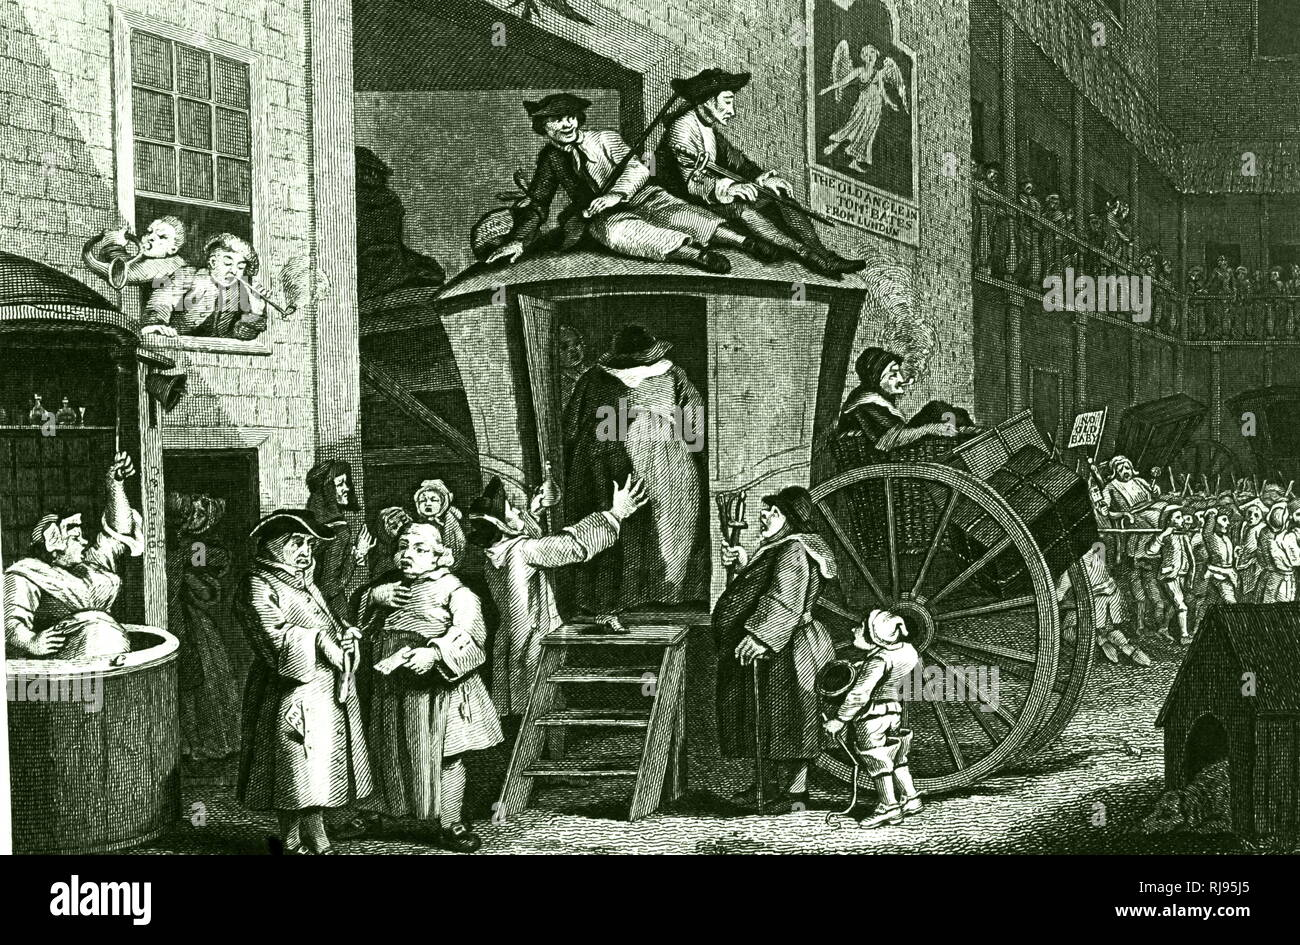 An engraving depicting passengers boarding a stagecoach in the yard of a typical galleried Inn thought to be in Chelmsford, Essex. Engraving by William Hogarth (d. 1764) an English painter, printmaker, pictorial satirist, social critic, and editorial cartoonist. Dated 18th century - Stock Image